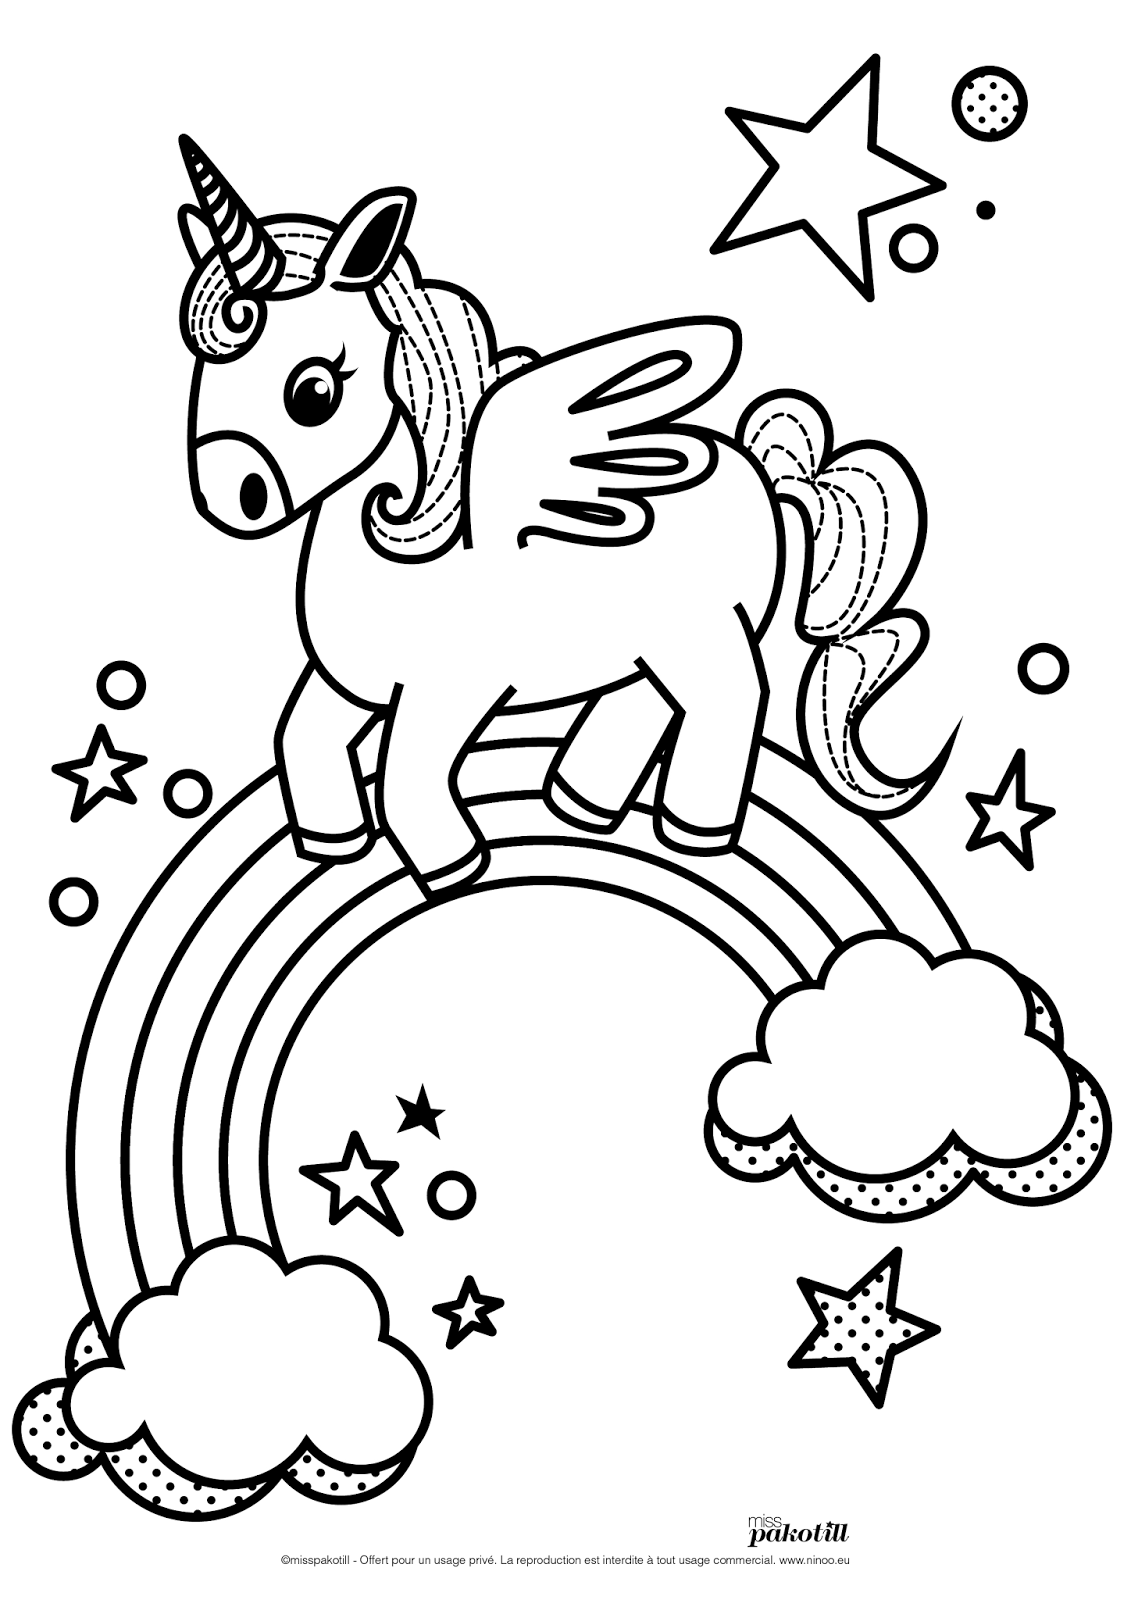 Miss pakotill draw on monday 5 coloriages pour l 39 association ninoo unigoose licorne - Dessins a colorier gratuit ...